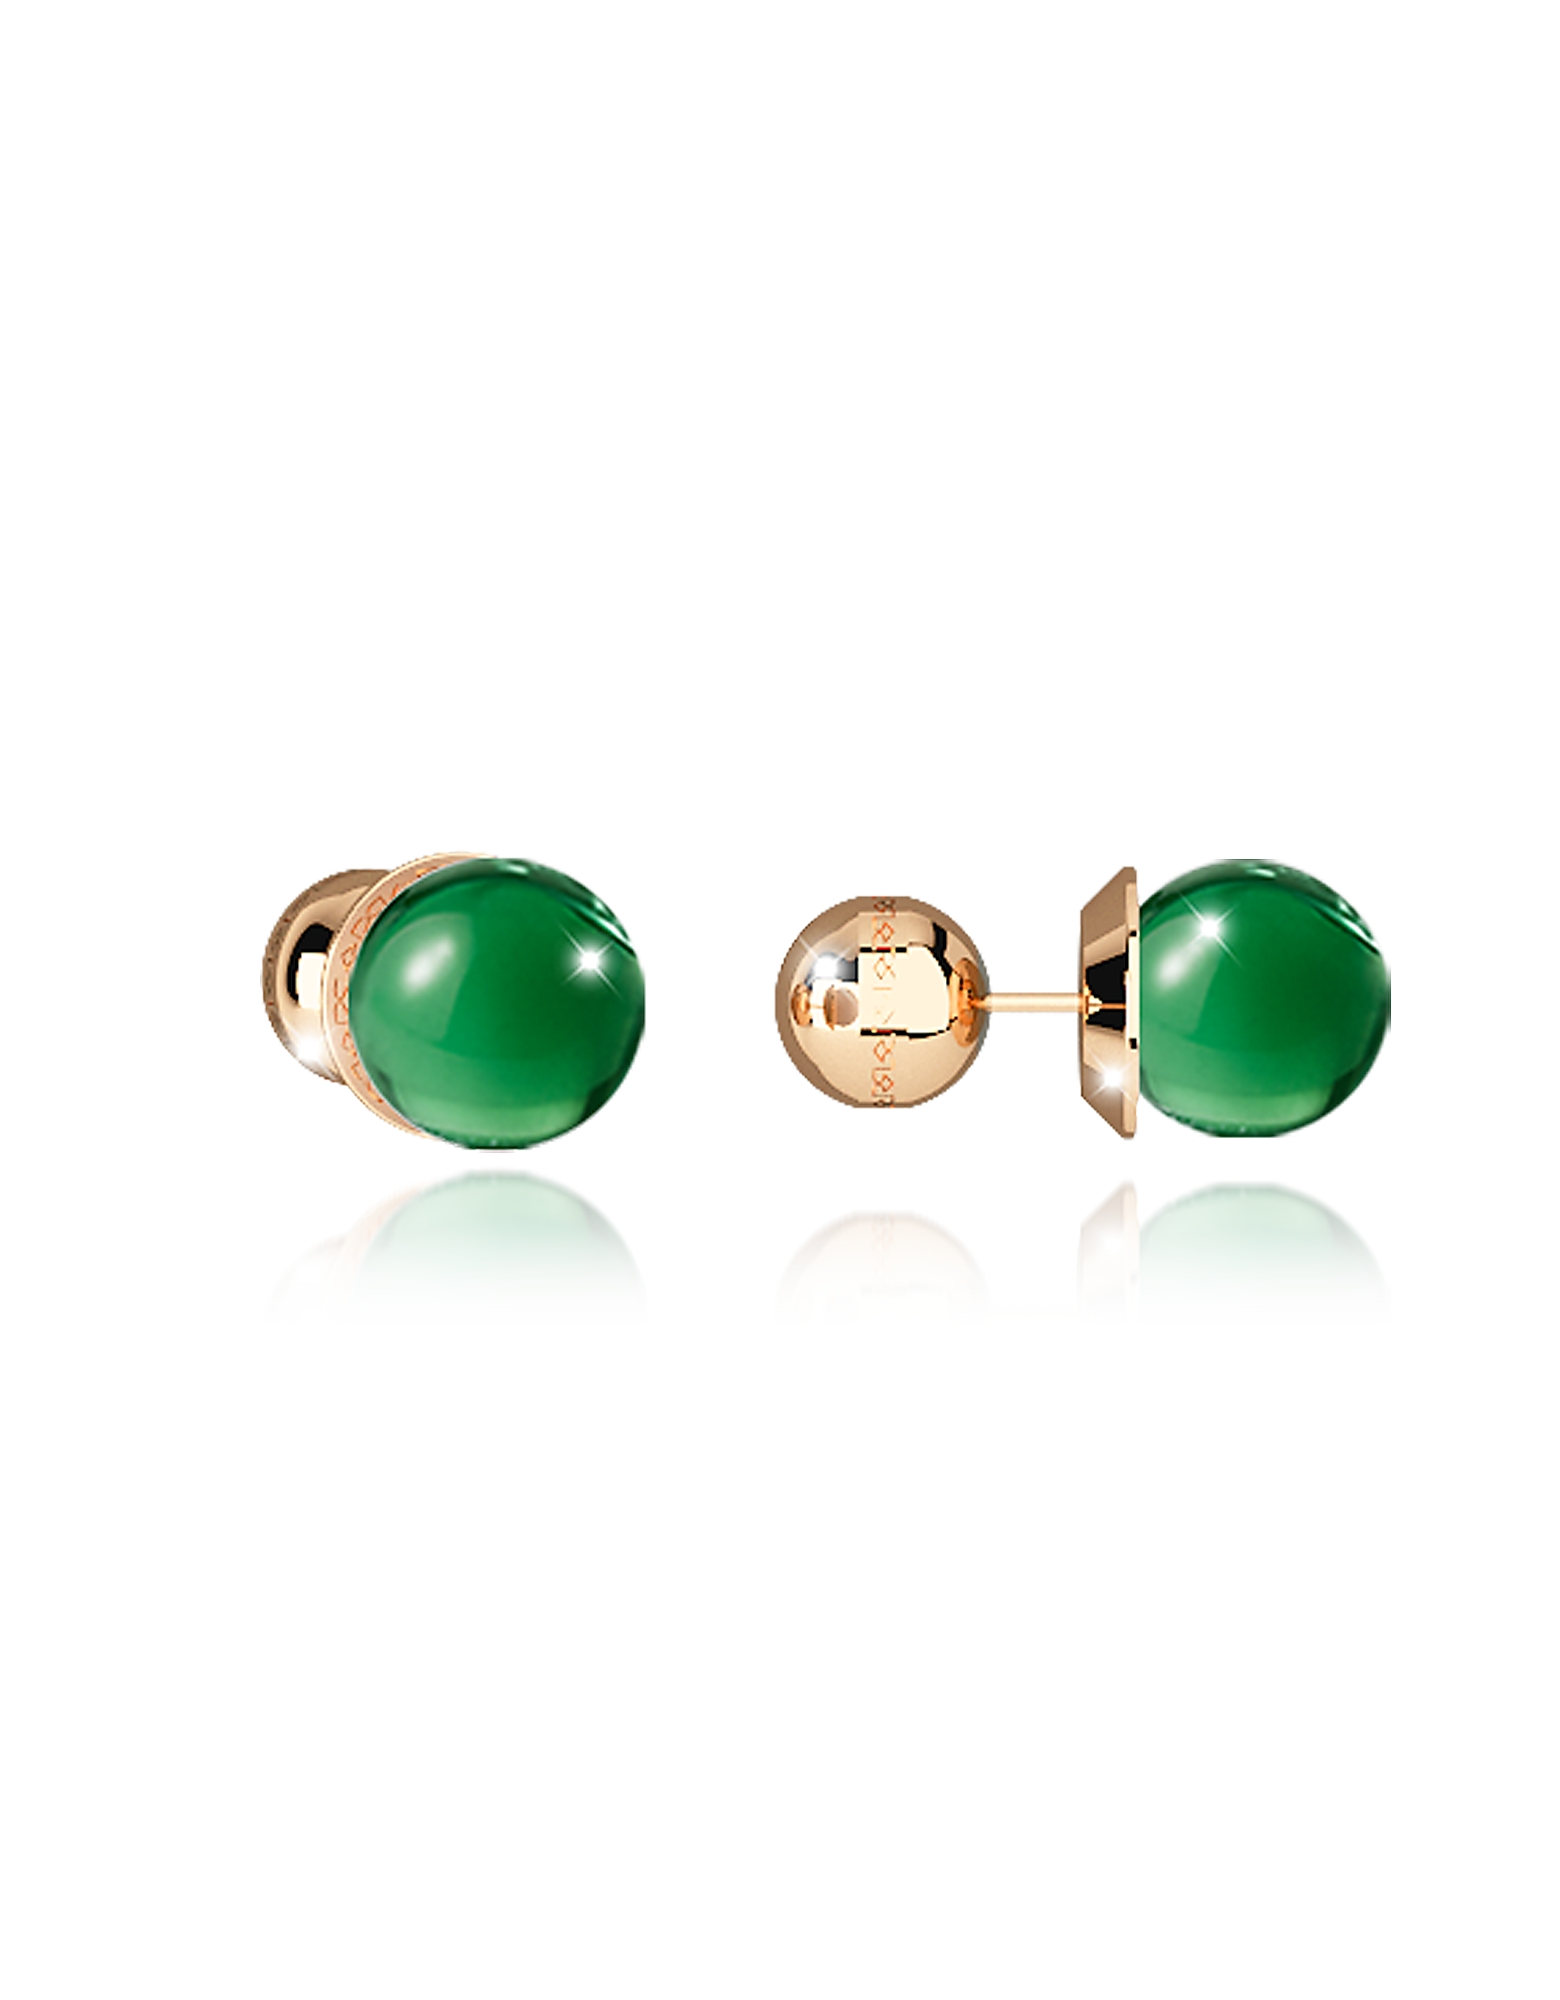 Boulevard Stone Yellow Gold Over Bronze Stud Earrings w/Green Hydrothermal Stone